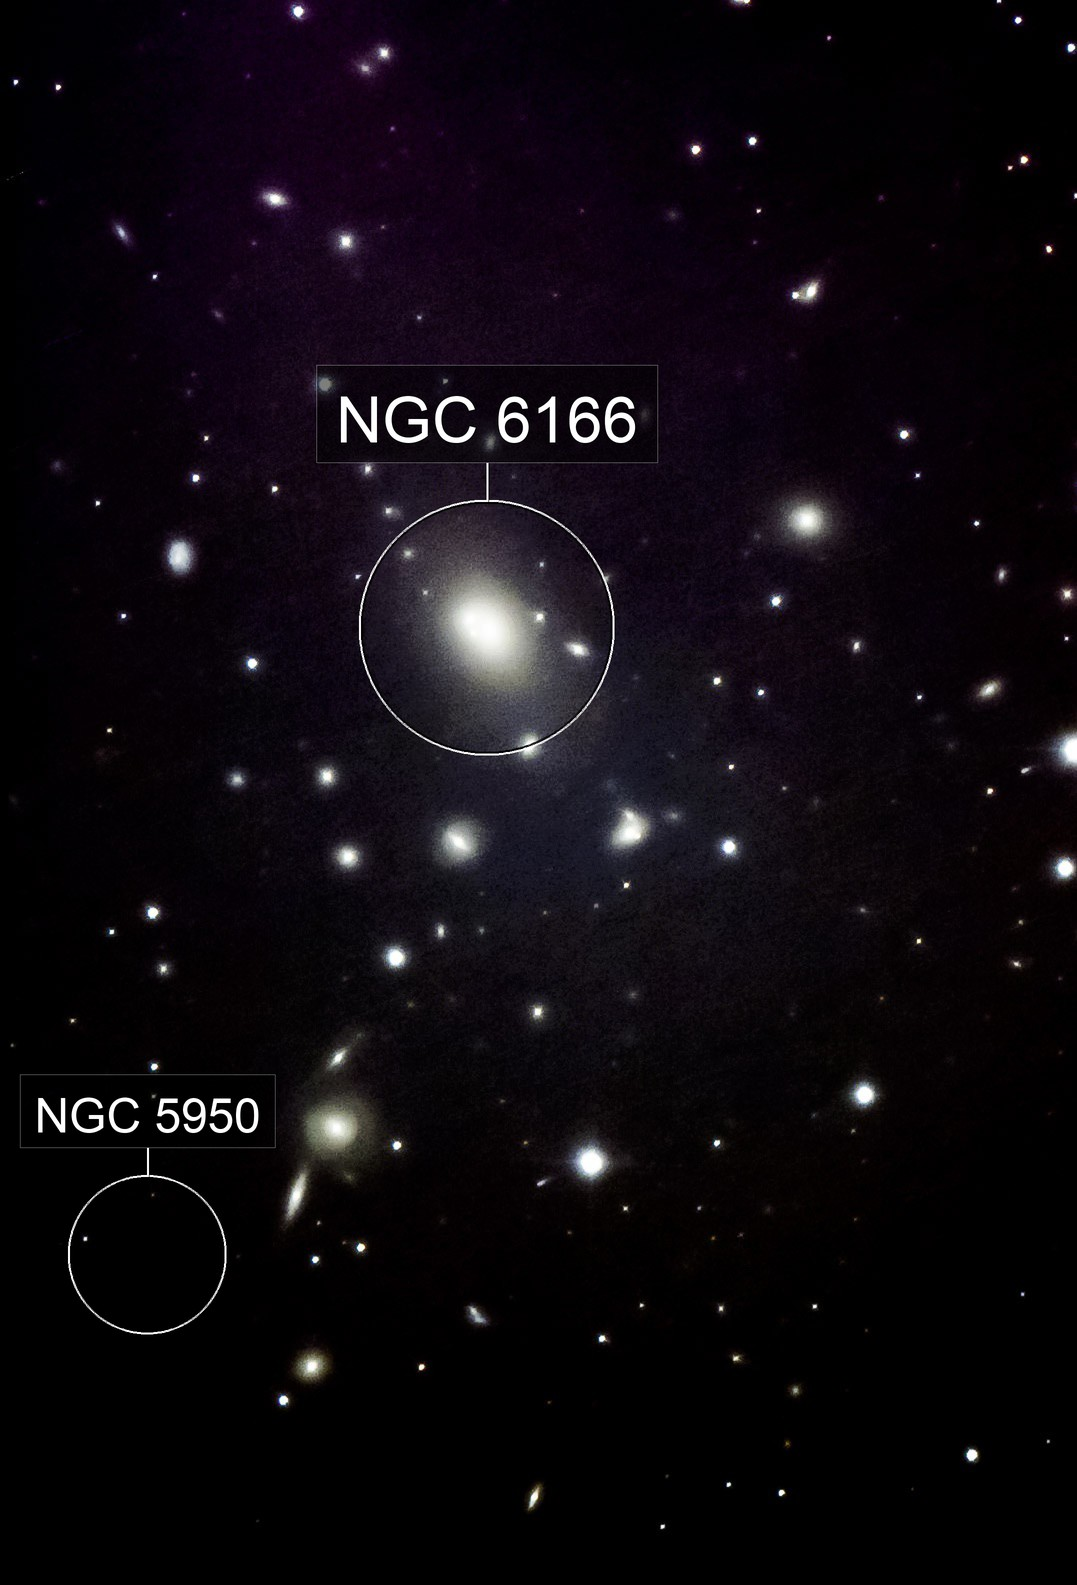 NGC 6166 - Galaxy Group in Herkules